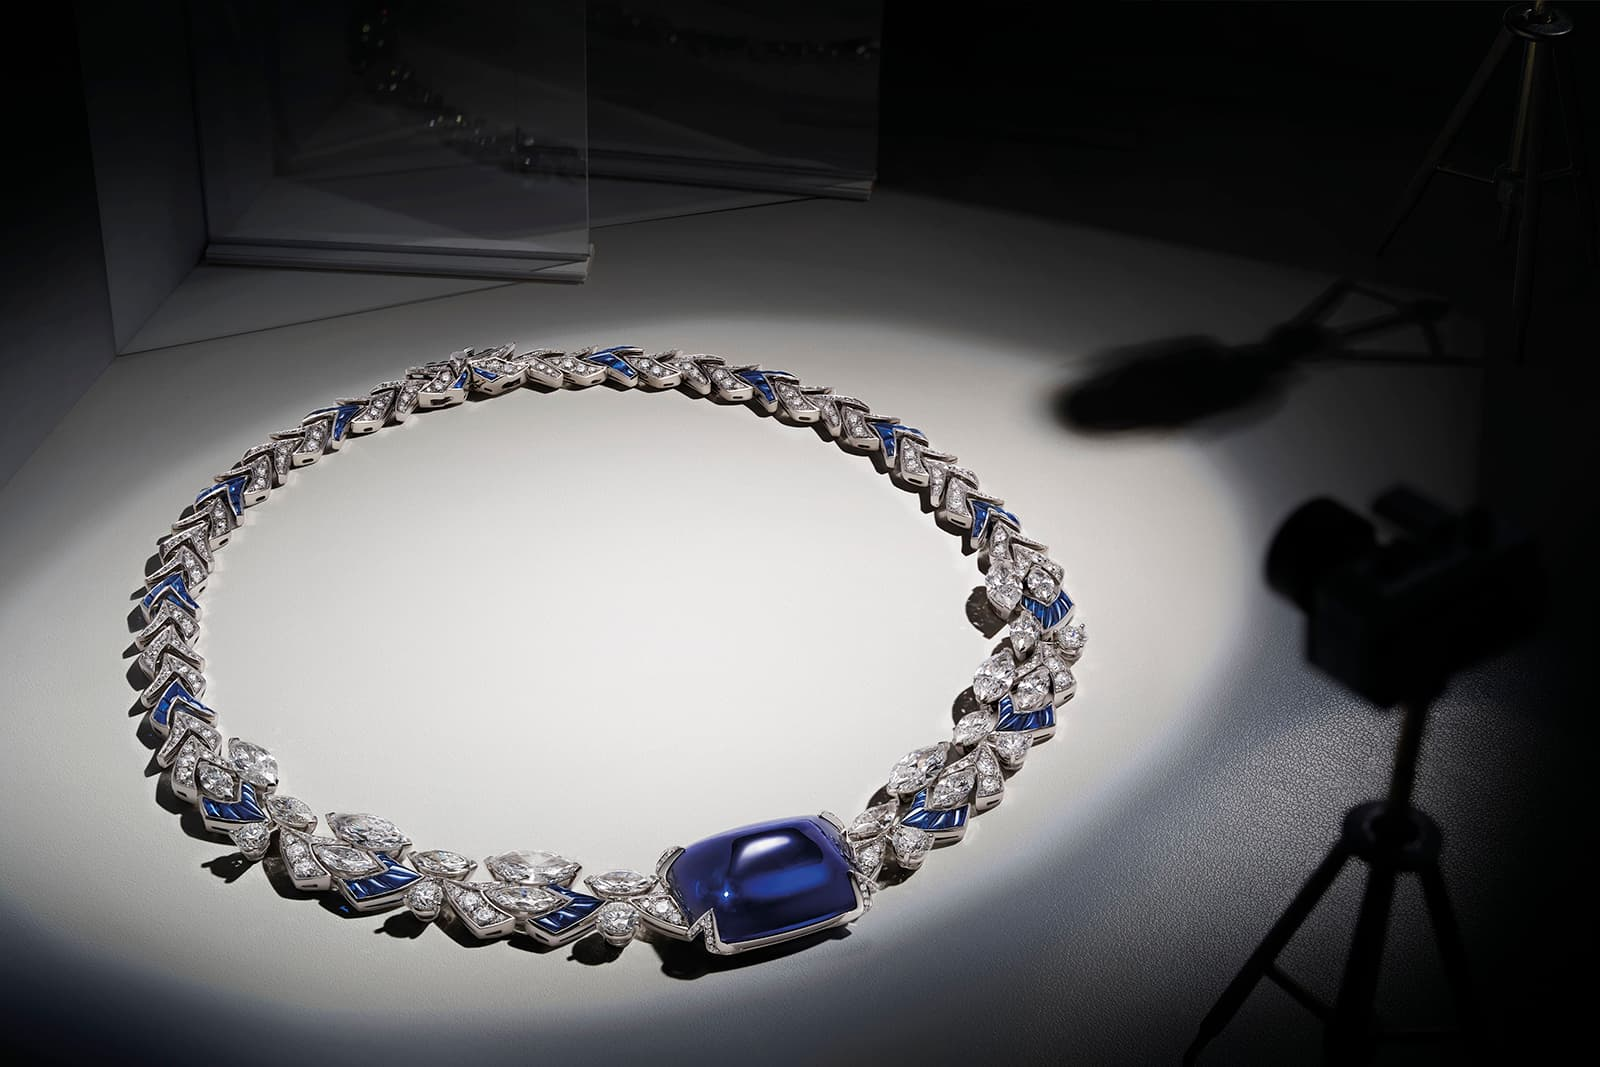 Bvlgari 'Cinemagia' necklace with 70.22 cts cabochon sapphire, 11.36 cts buff-top sapphires and 28.16 cts of diamonds